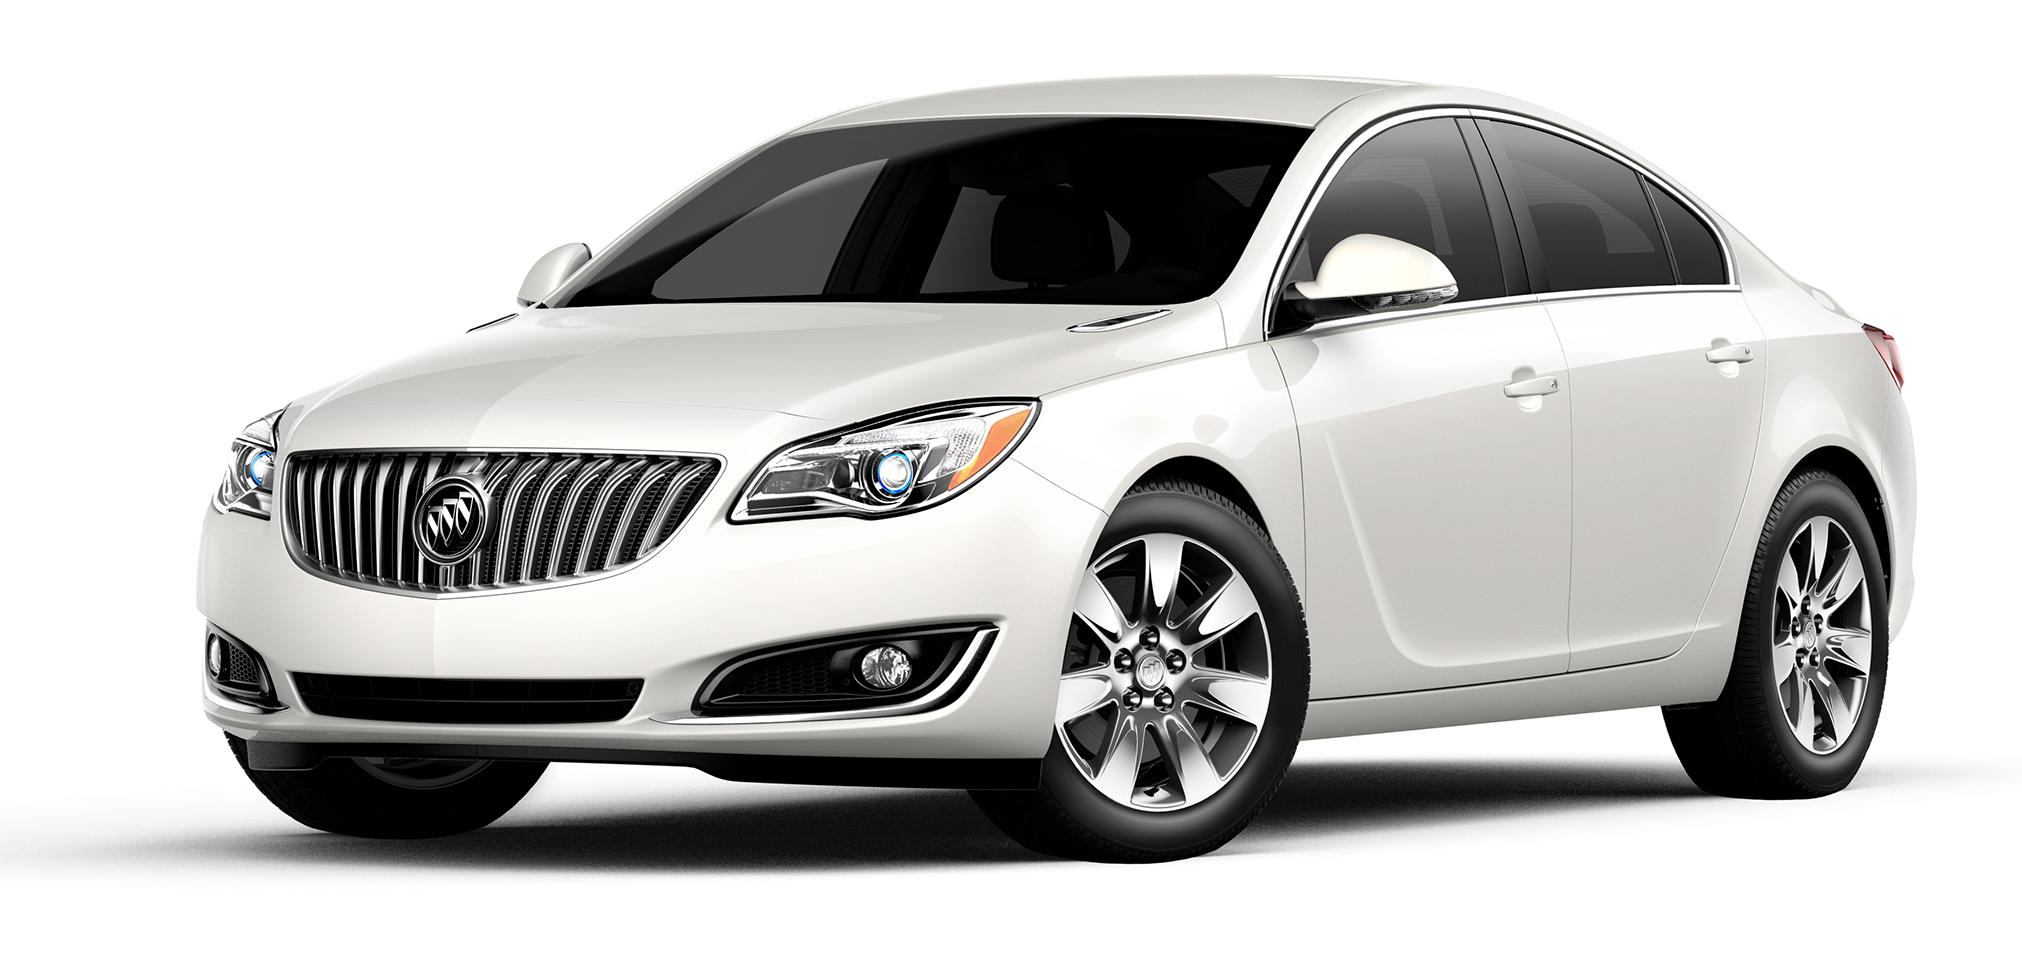 2017 Buick Regal White